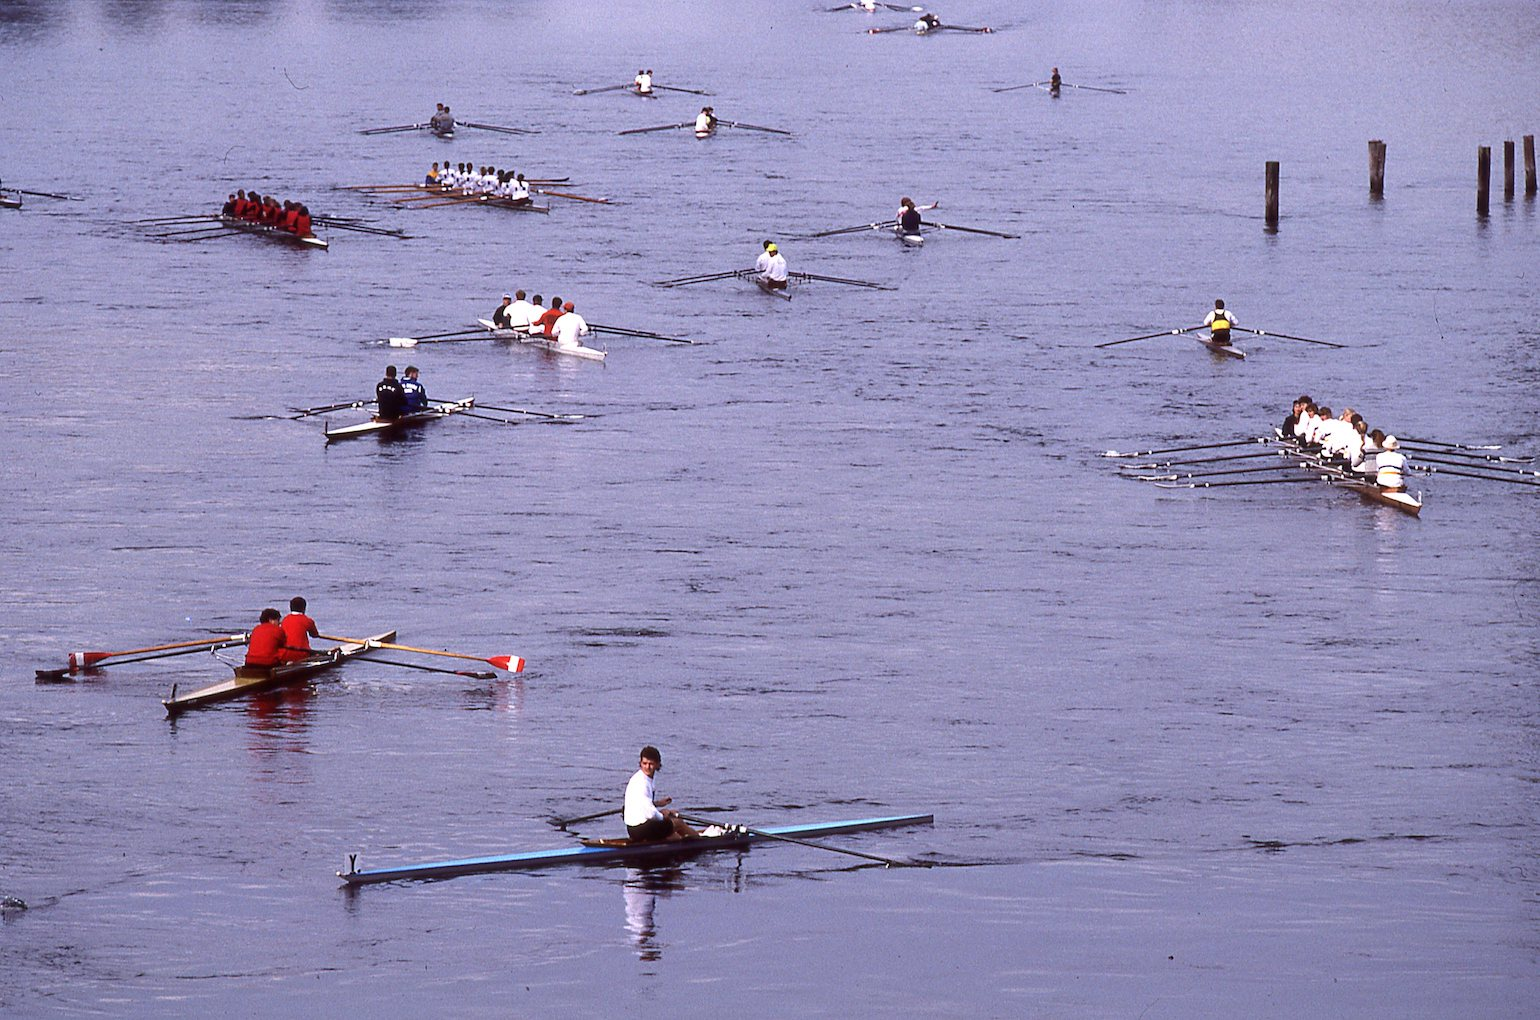 Gorge Rowing Regatta victoria, bC